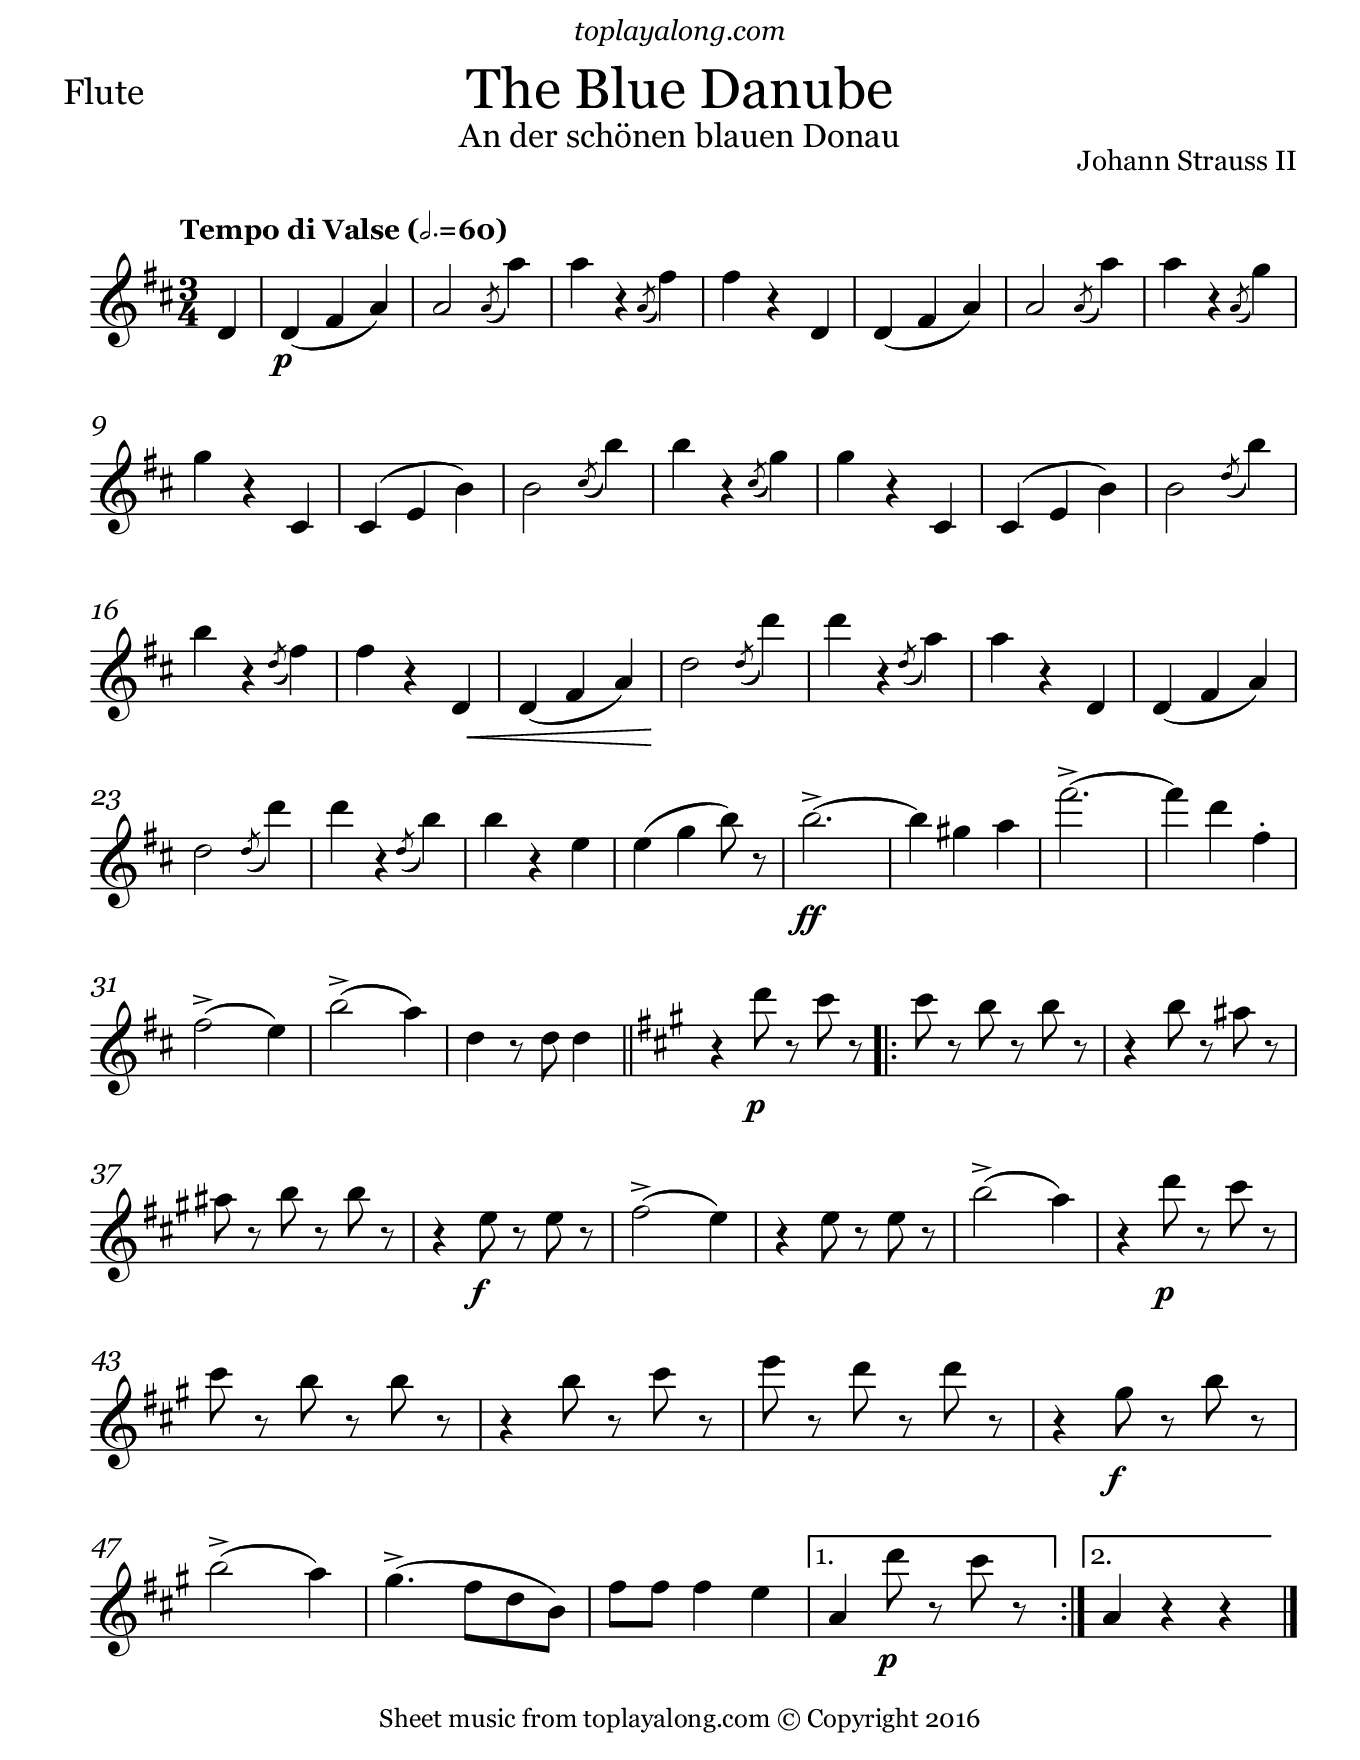 The Blue Danube Waltz by Strauss. Sheet music for Flute, page 1.